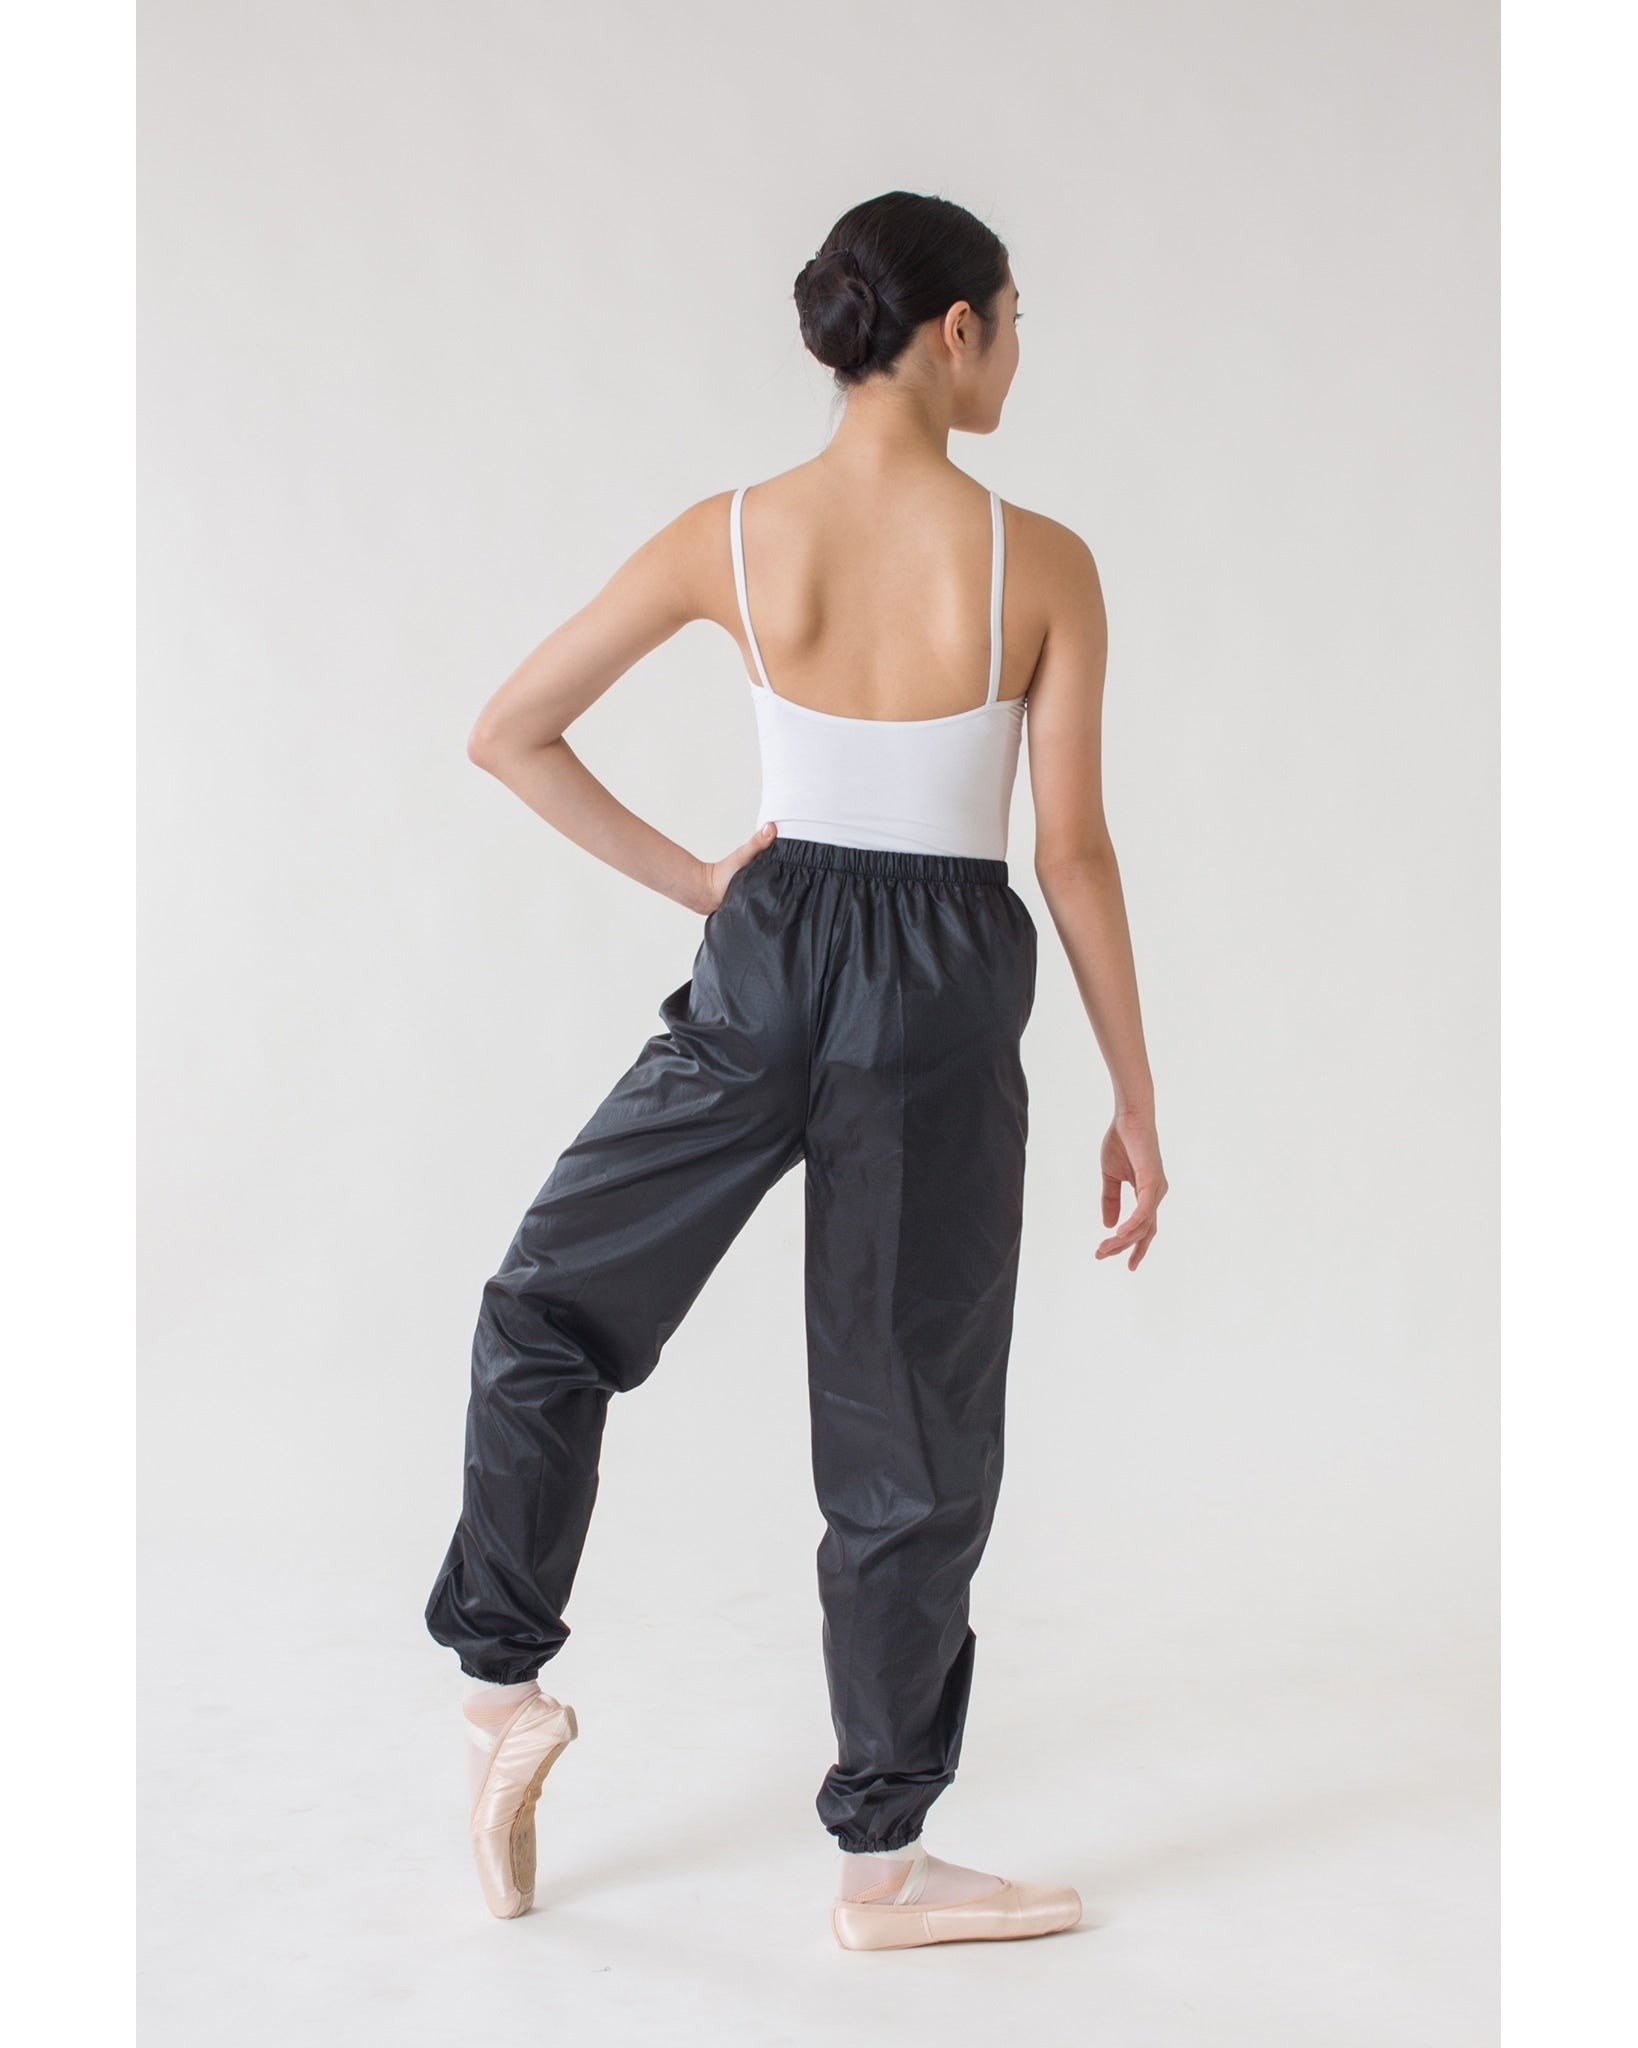 Sonata Ripstop Pants - SWP32 Womens - Dancewear - Bottoms - Dancewear Centre Canada